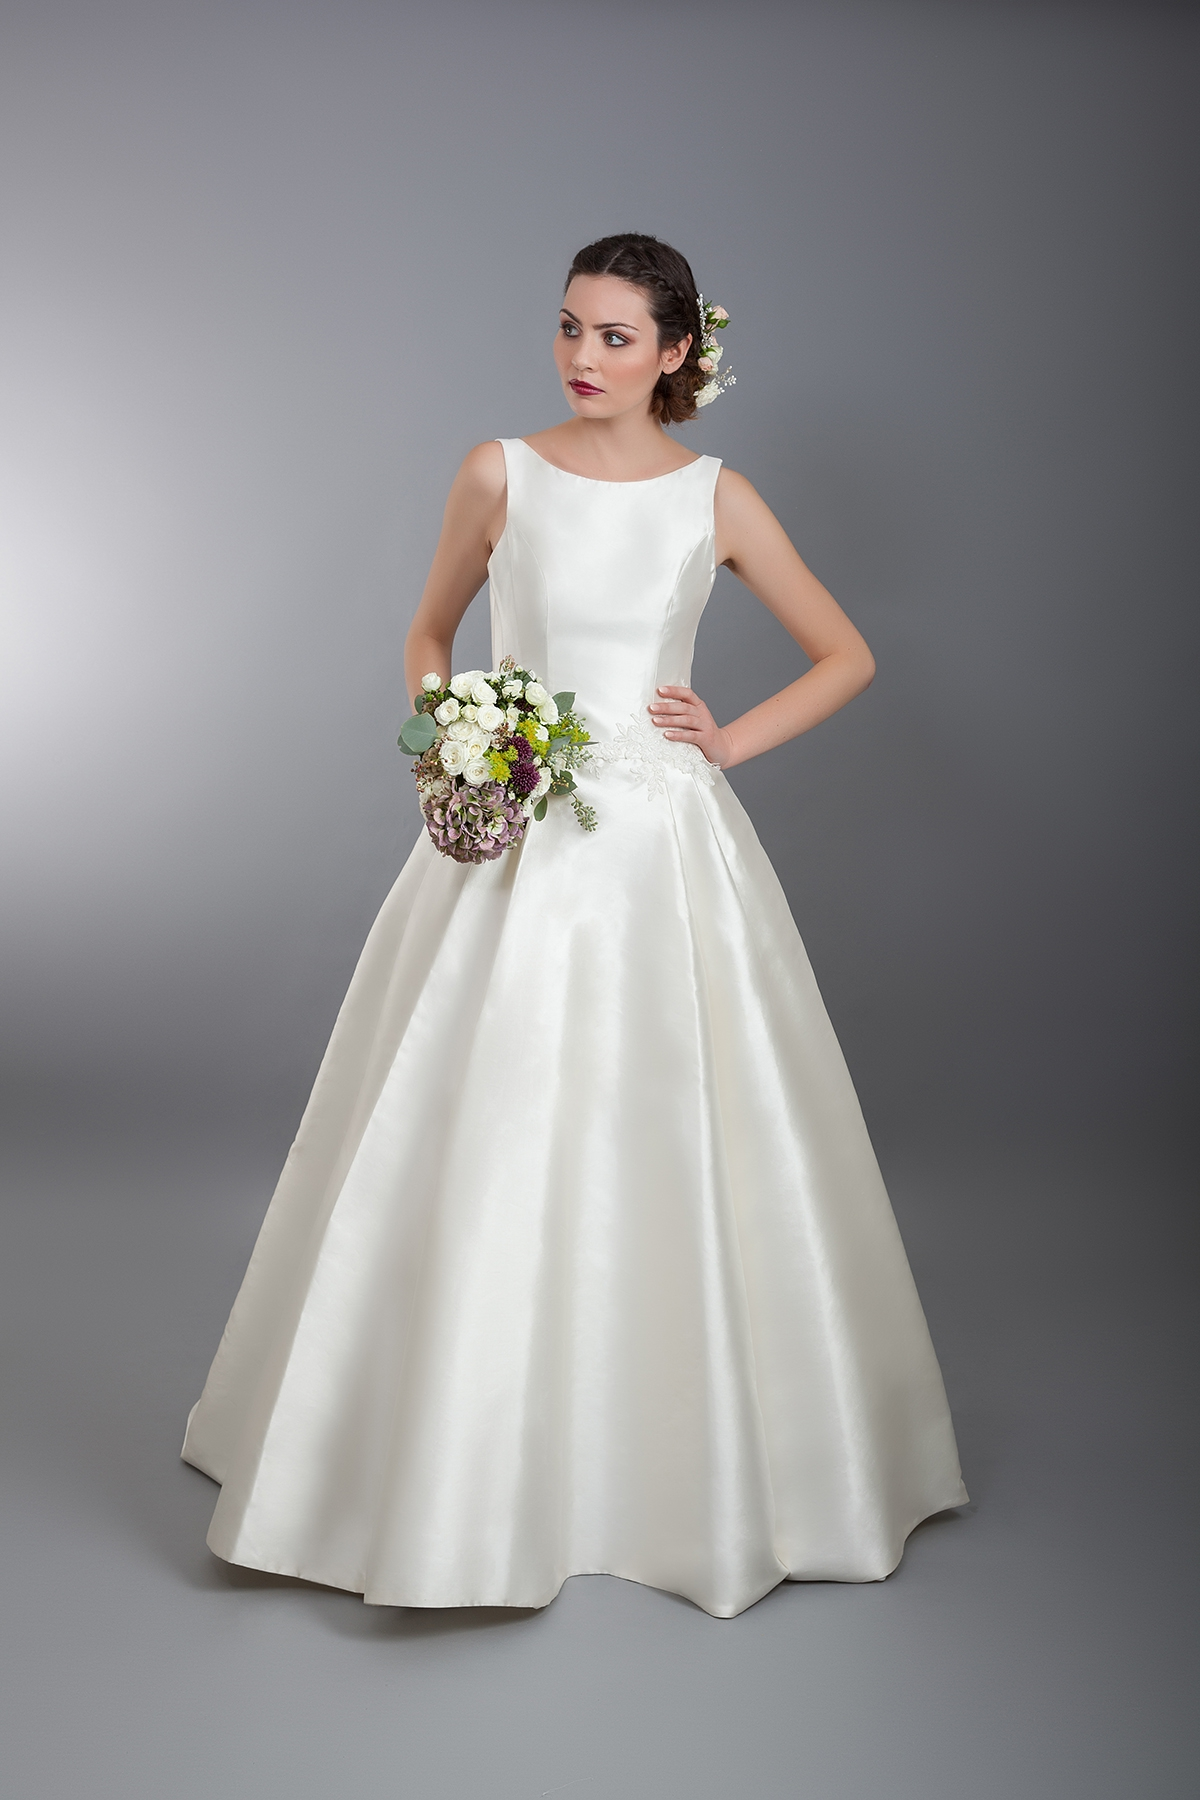 Introducing shanna melville bridal couture timeless elegant the rosa dress by shanna melville ombrellifo Choice Image